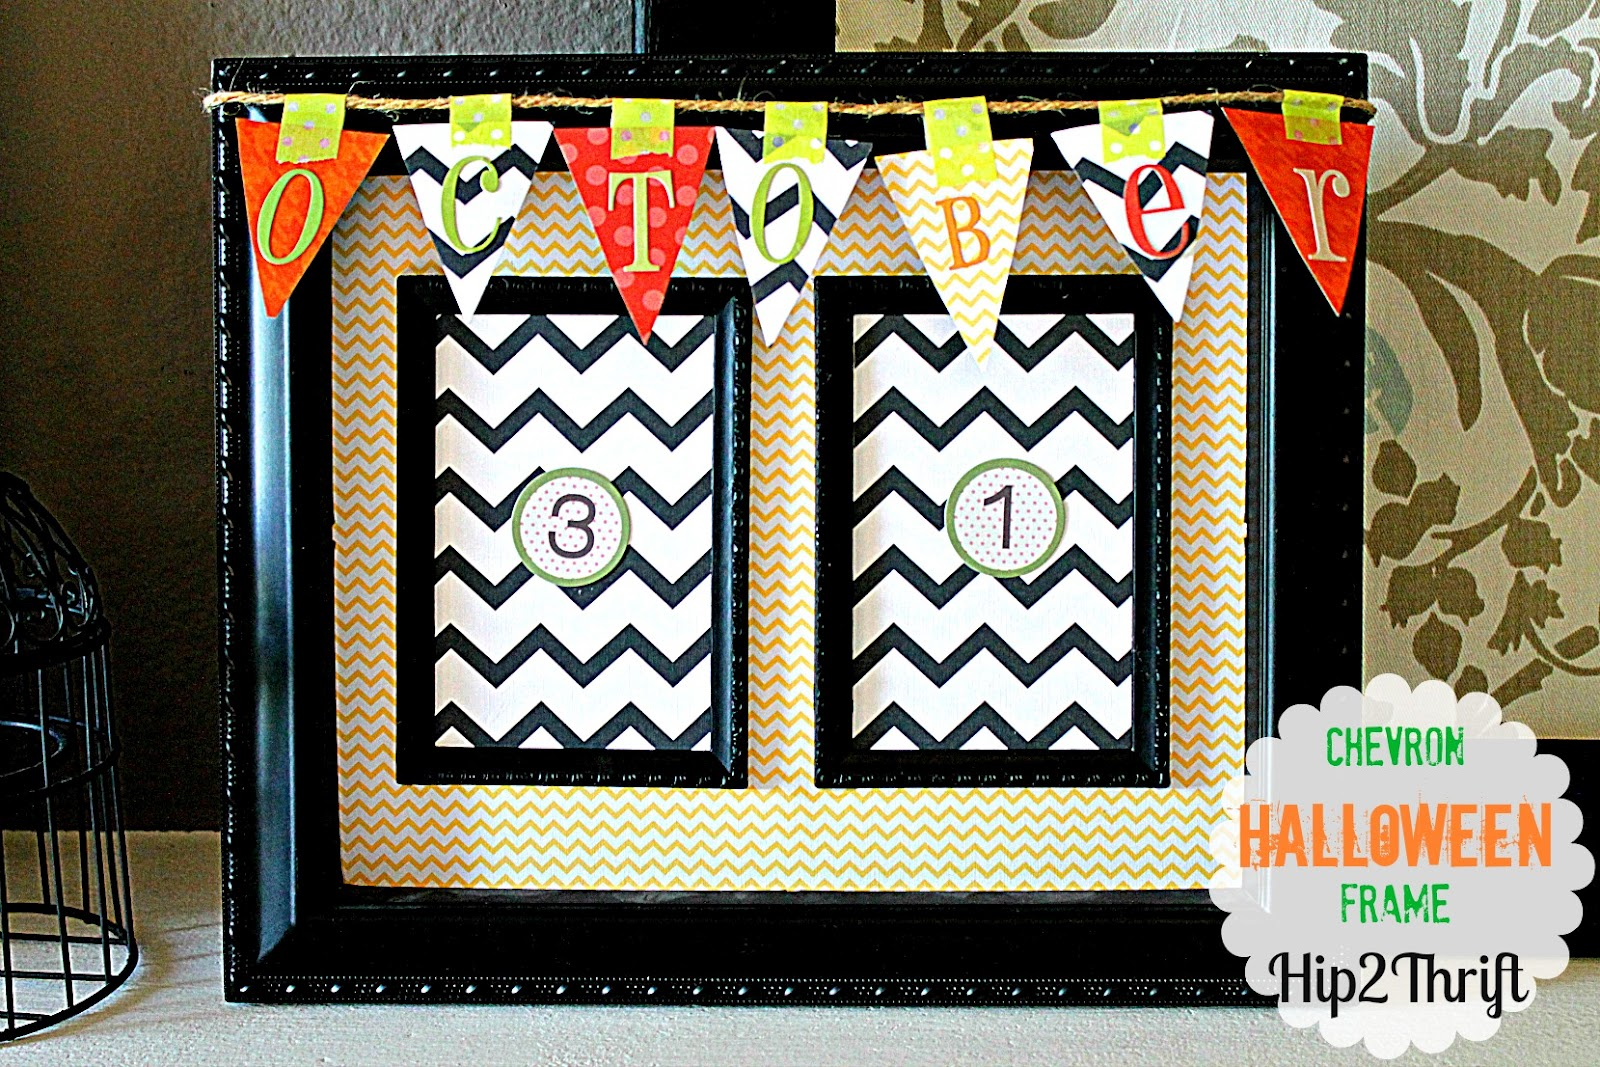 Hip2thrift diy countdown halloween frame for Decorate your own picture frame craft